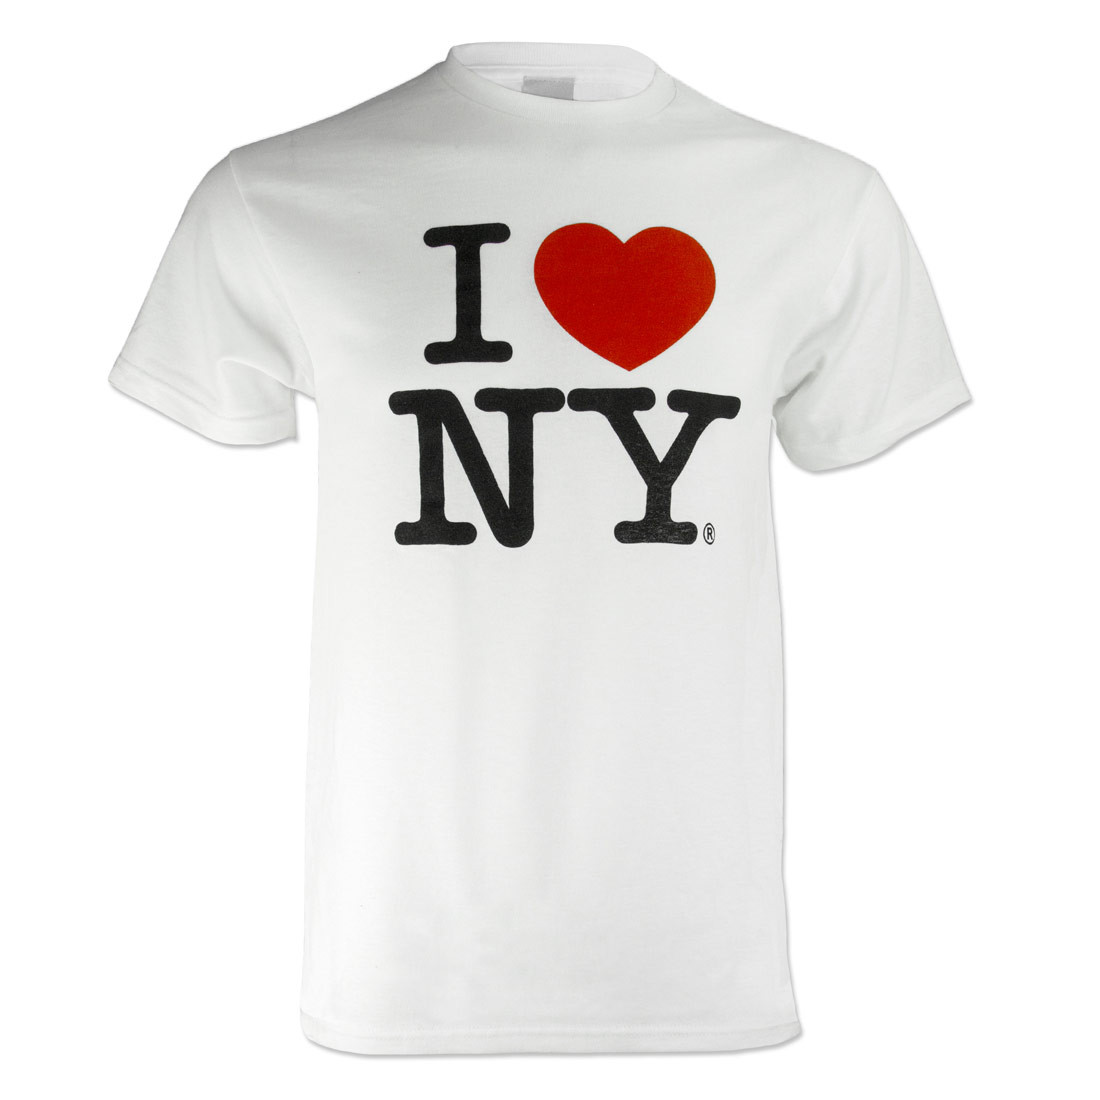 White I Love NY Tee Shirt 168d62379d5